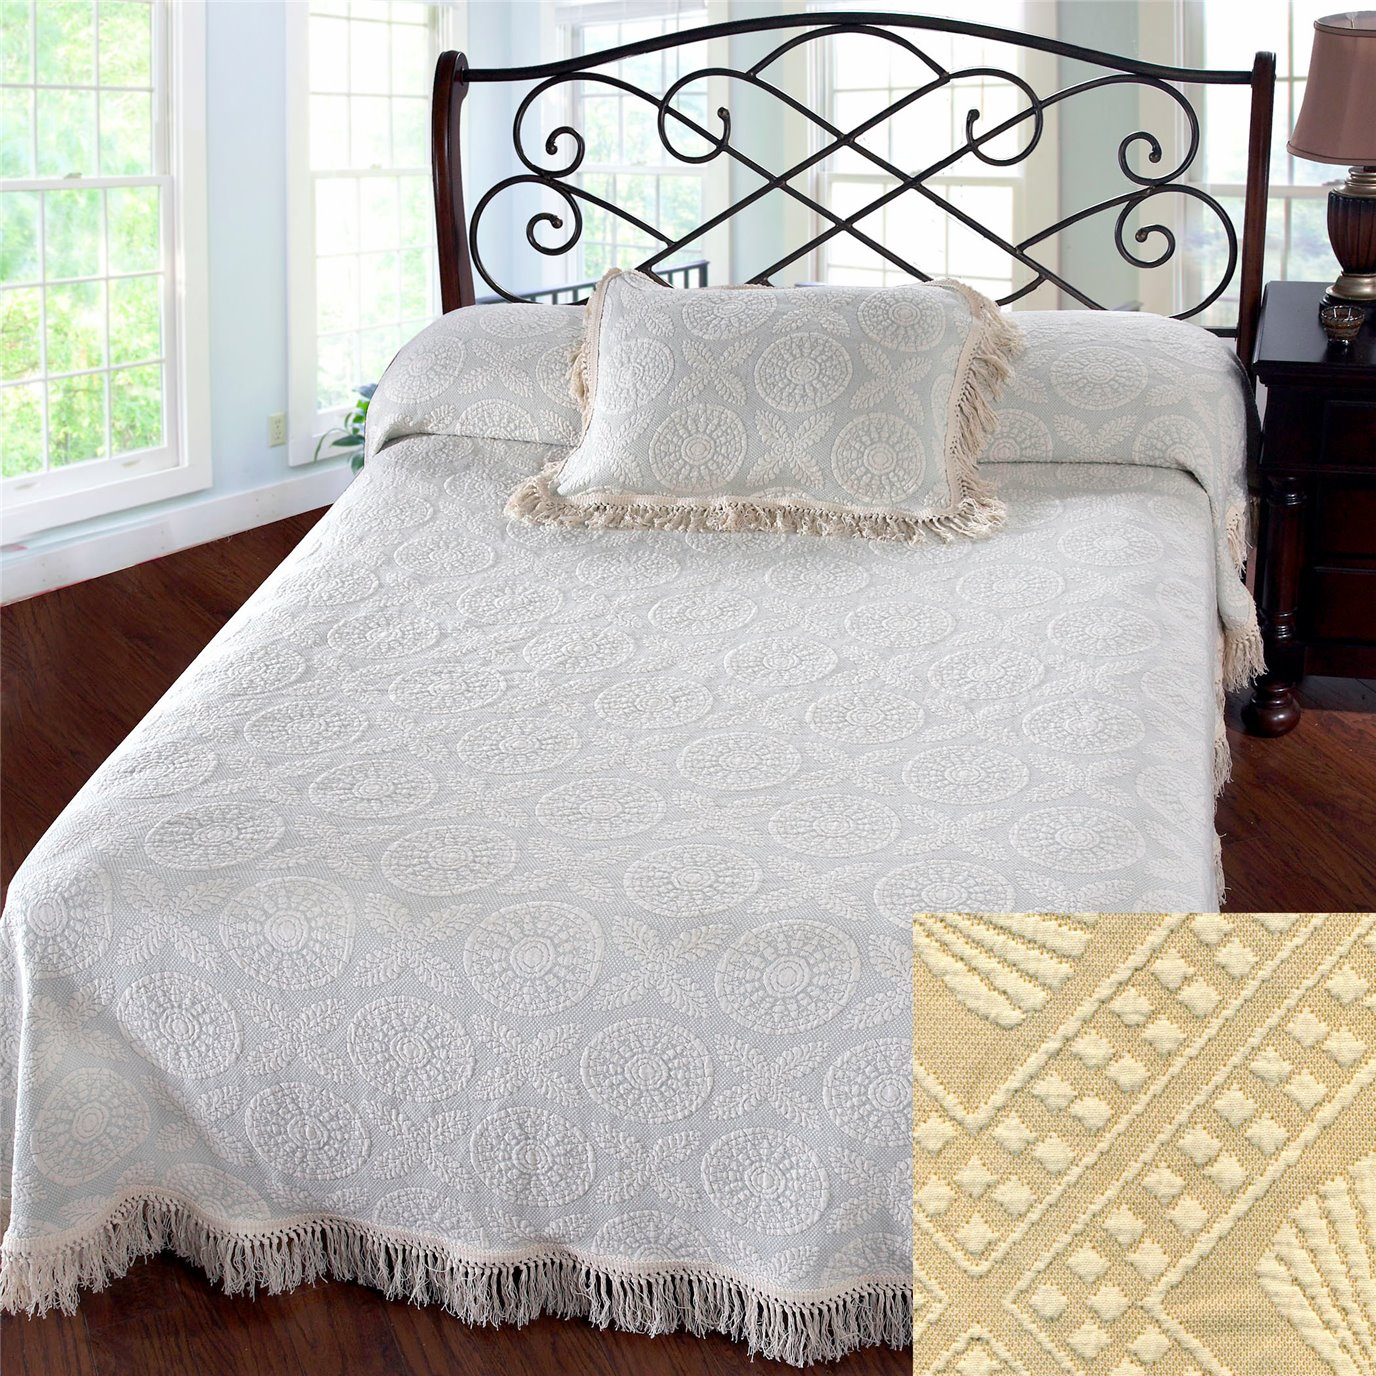 Heirloom King Linen Bedspread